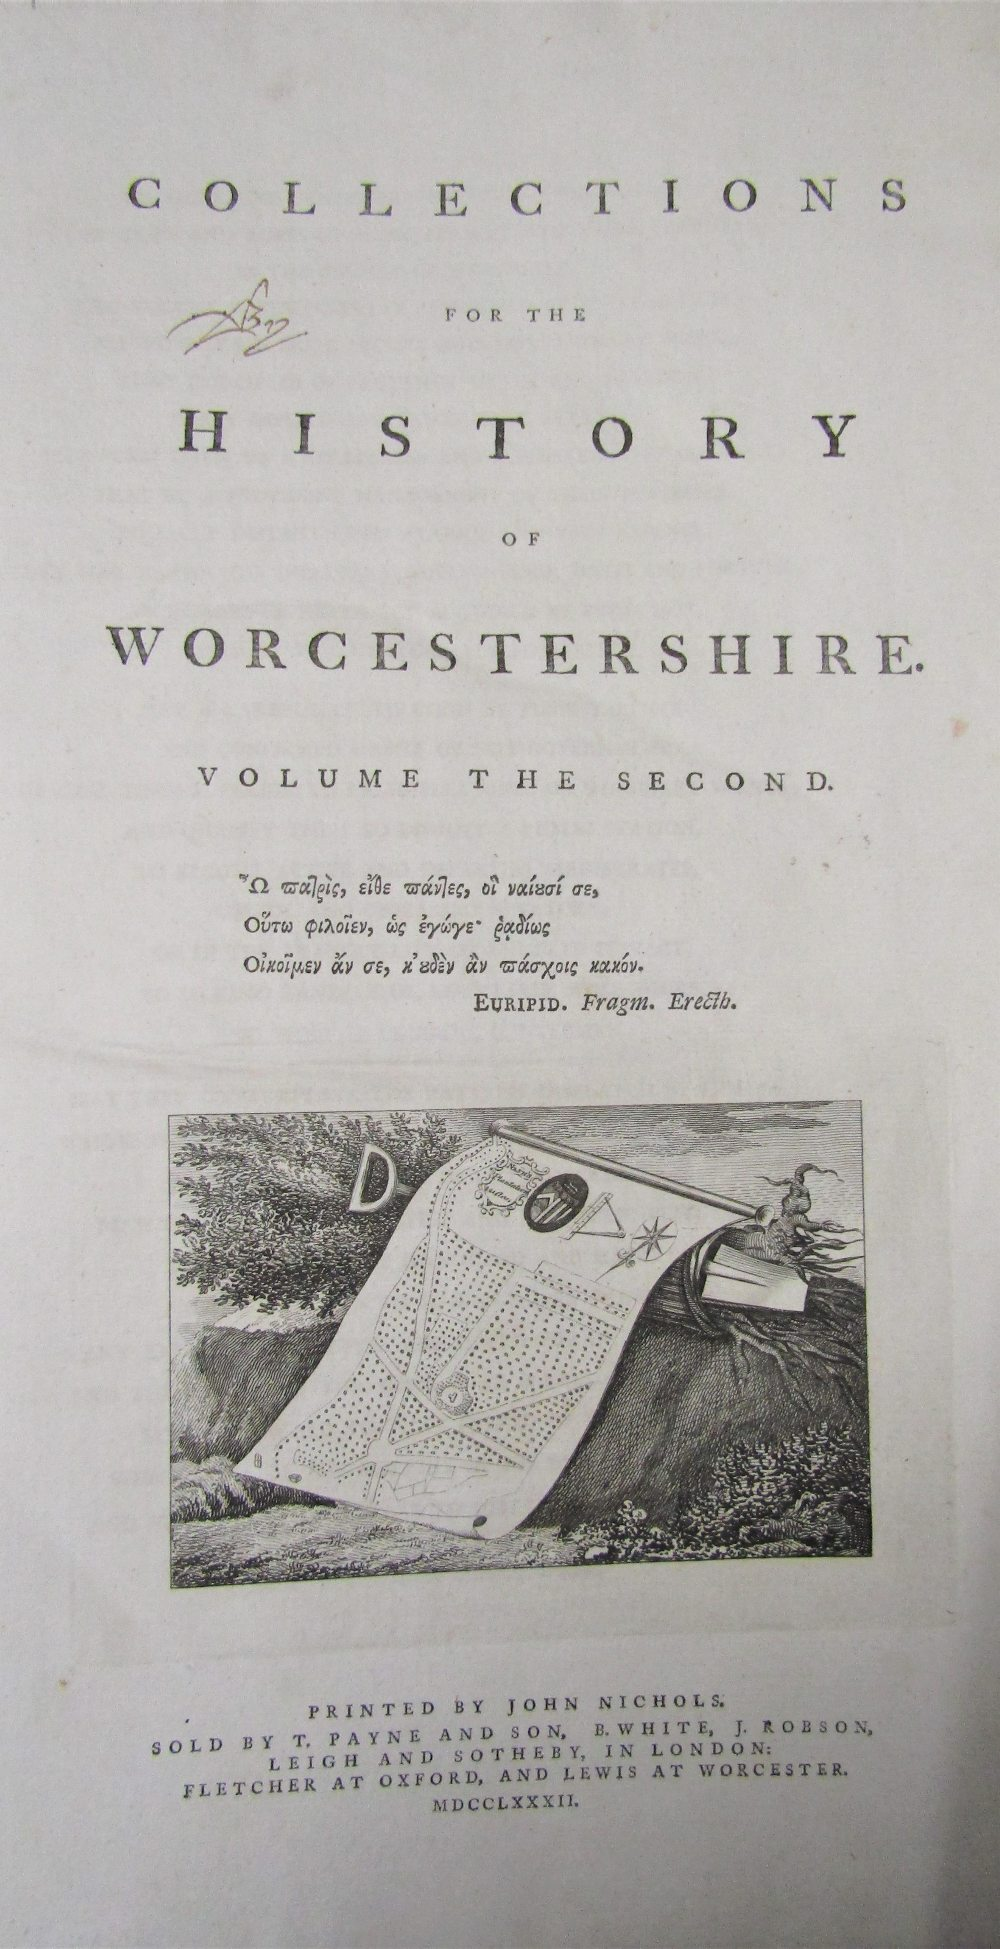 Lot 805 - NASH Tredway - Collection of the History of Worcestershire, two volumes, printed by John Nichols,